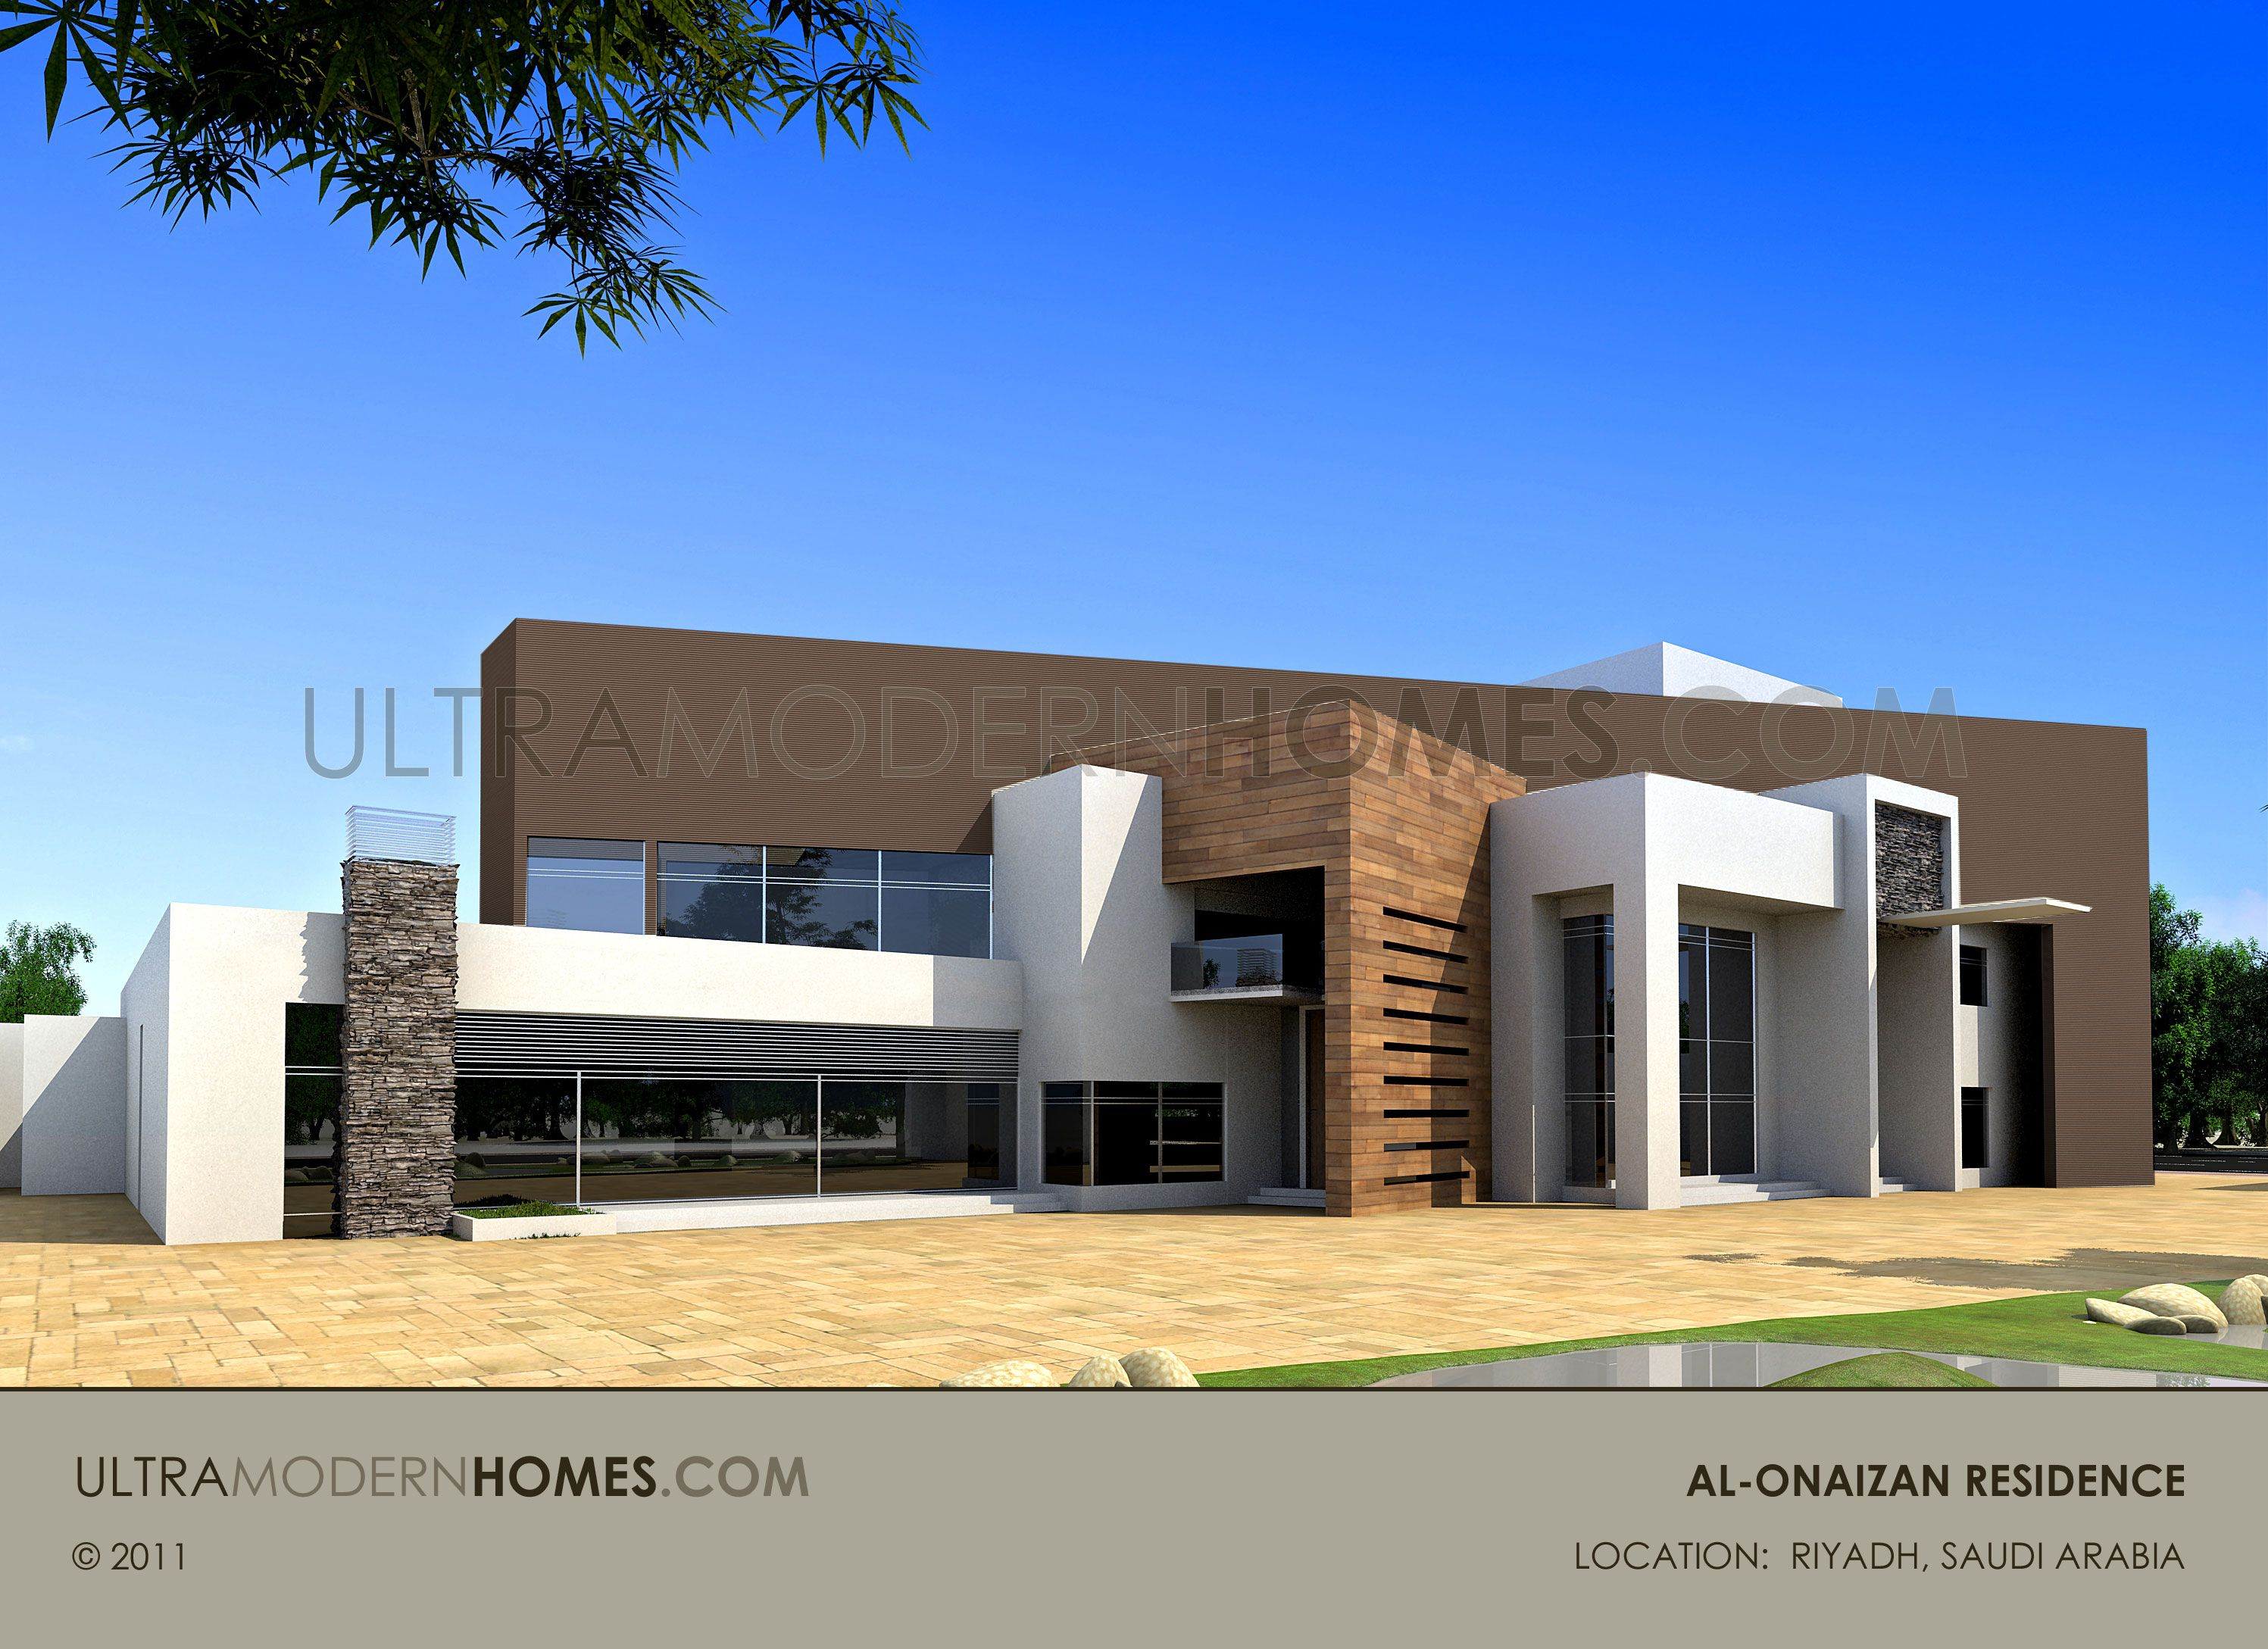 Luxury ultra modern custom home design in riyadh saudi for Modern custom homes